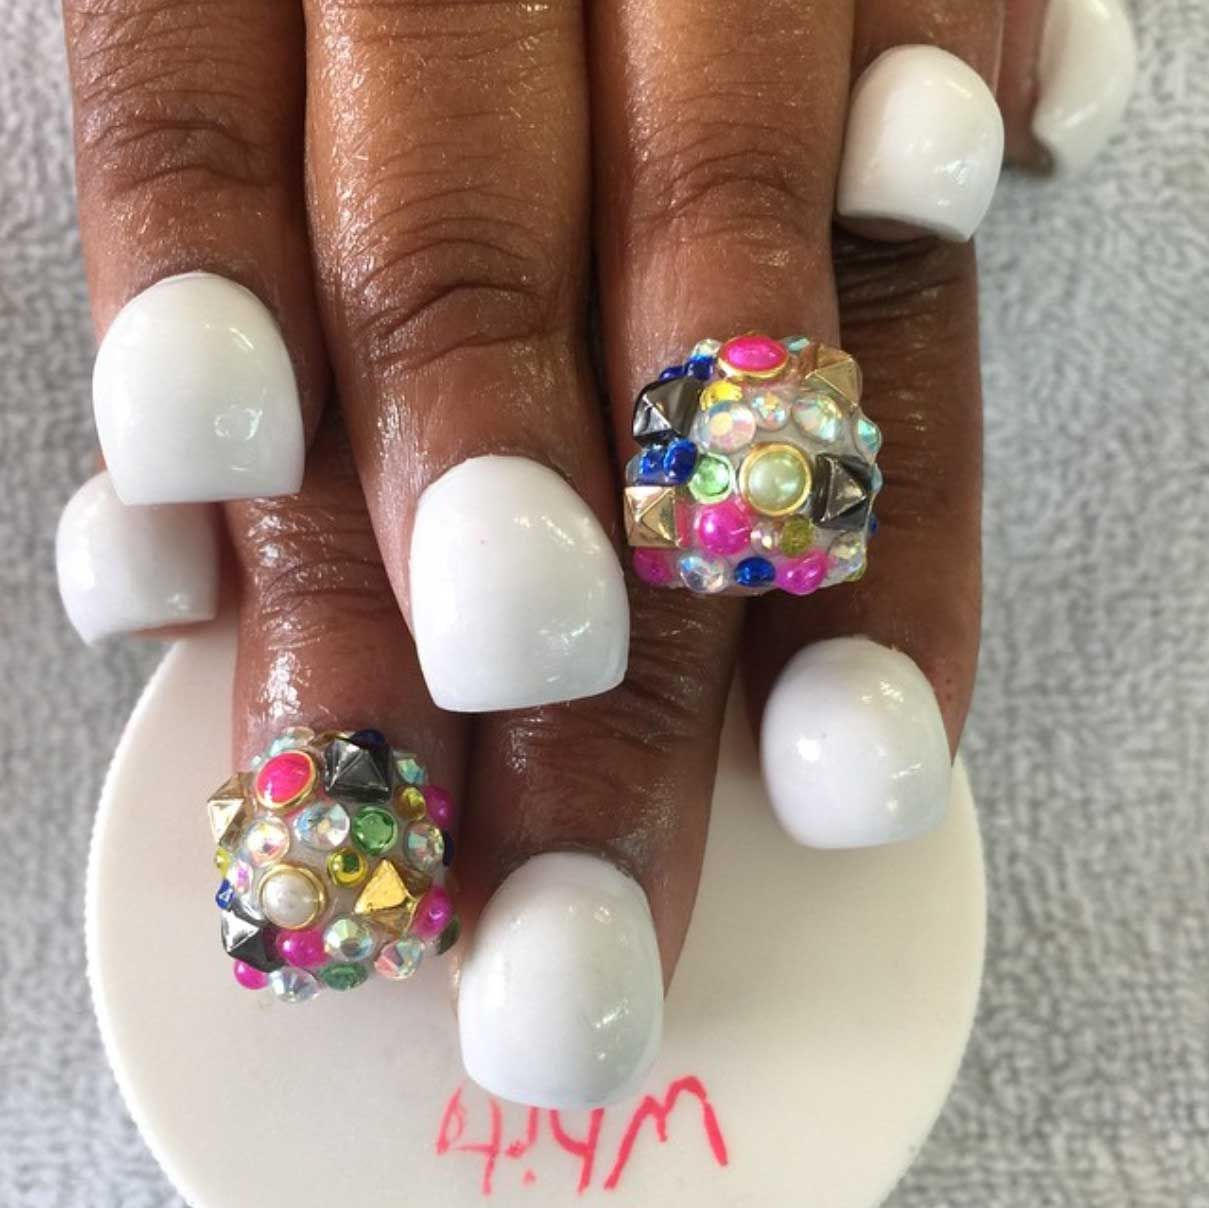 Bubble Shaped Nails Are The Crazy New Nail Shape Everyone Is Obsessed With